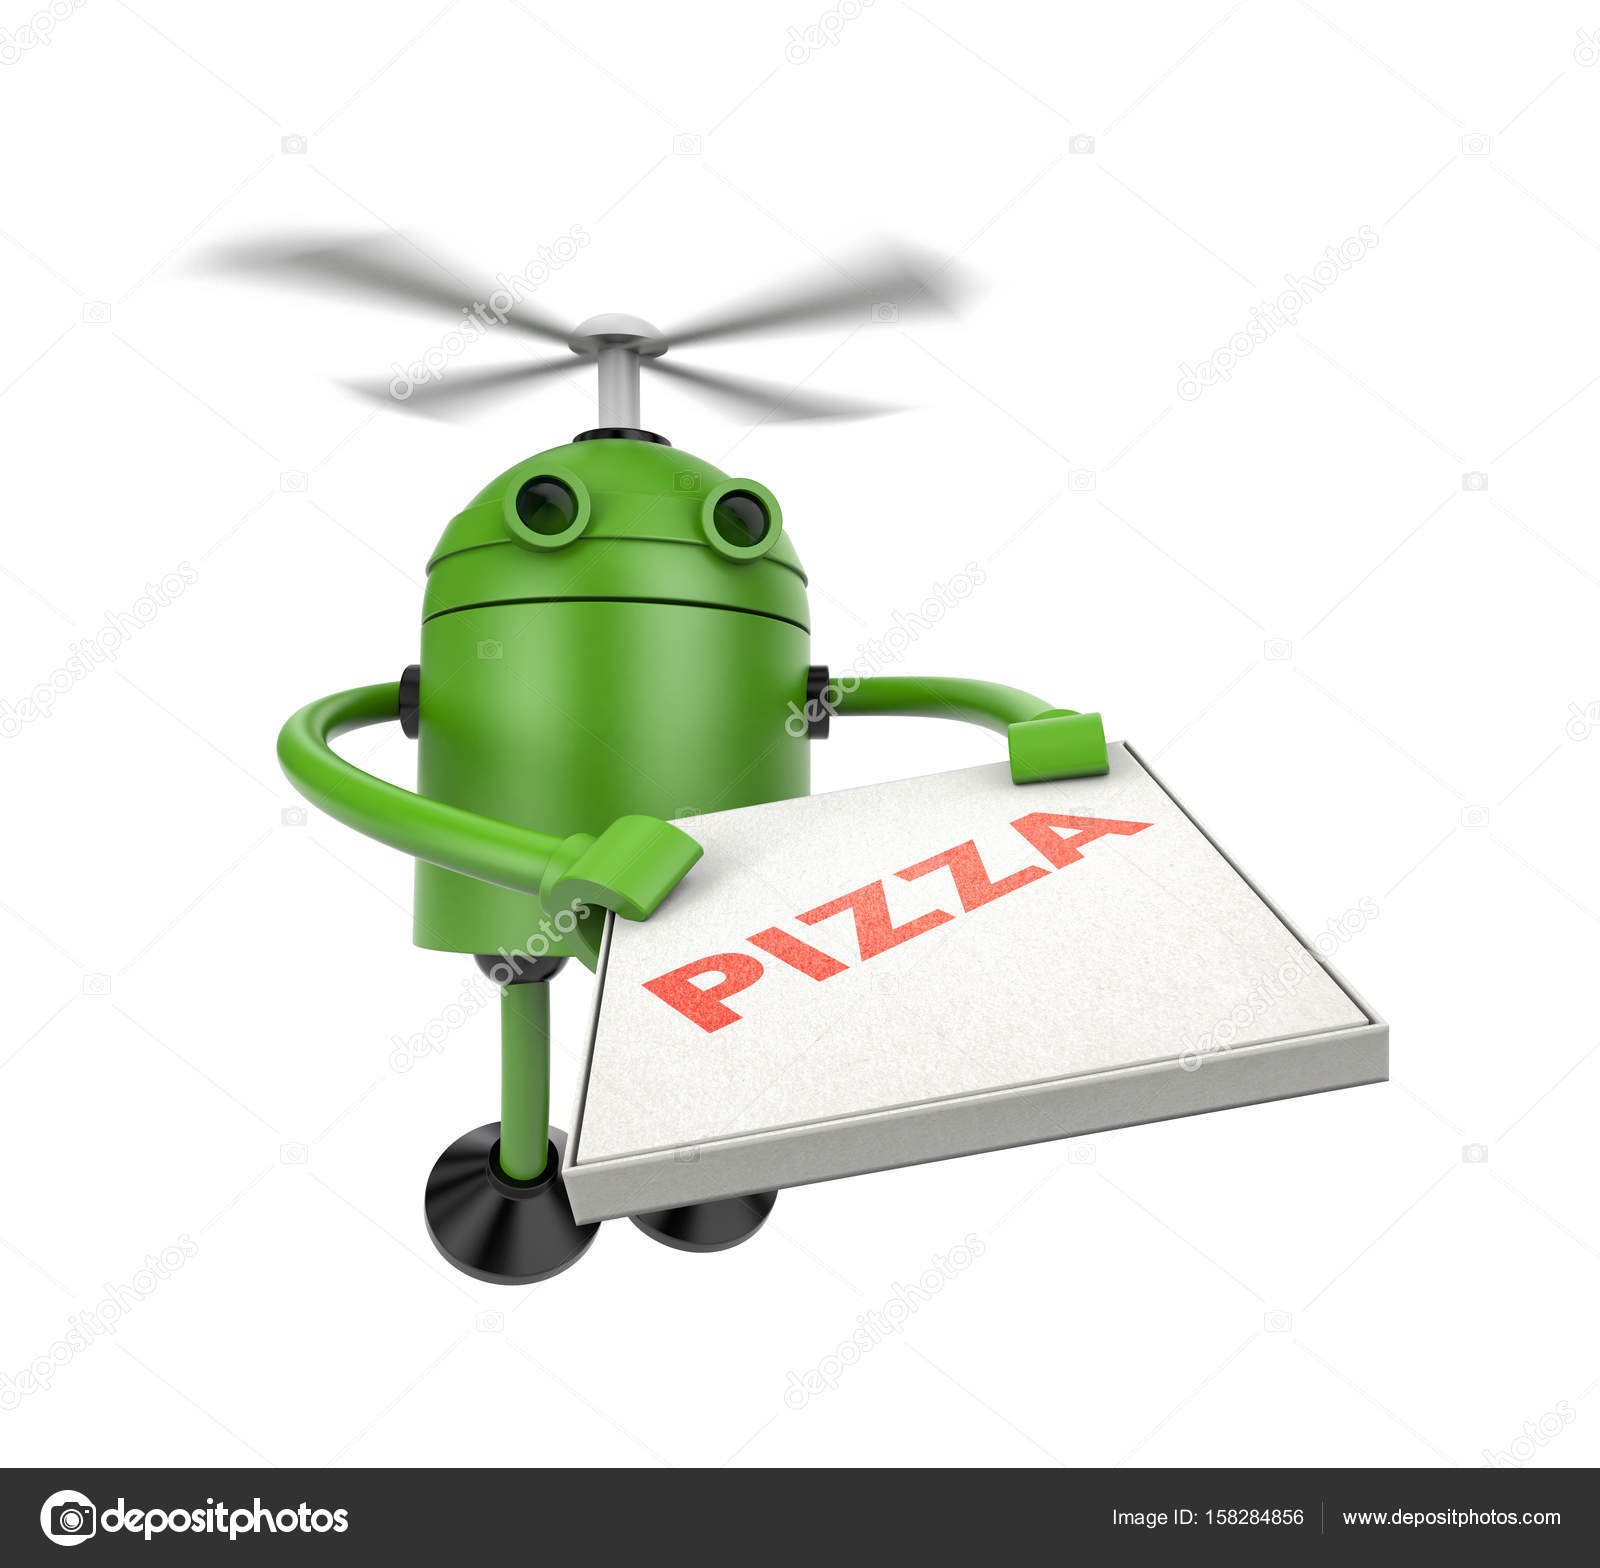 Robot Drone Delivery Pizza Stock Photo 158284856